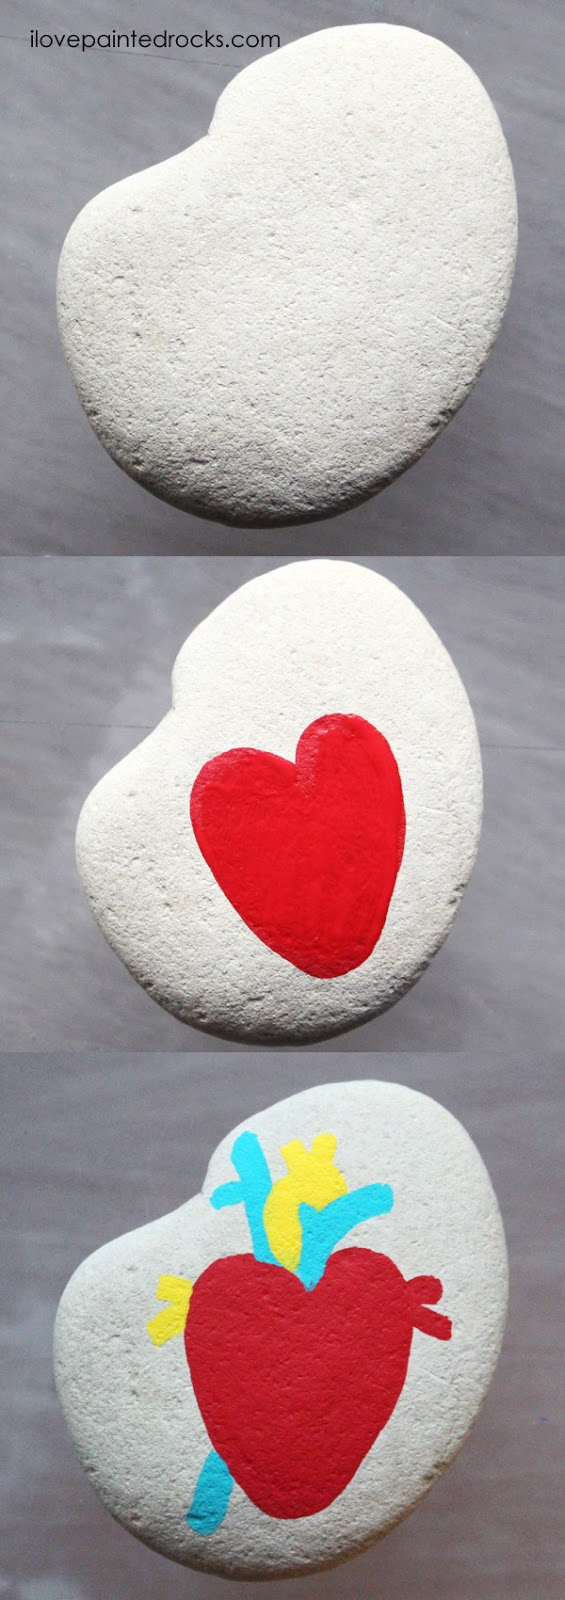 Easy rock painting ideas for Valentine's Day. I love all the painted rock tutorials in this post! Learn how to paint a human heard inspired heart on a rock. #ilovepaintedrocks #rockpainting #paintedrocks #valentinescraft #easycraft #kidscraft #rockpaintingideas #polkadot